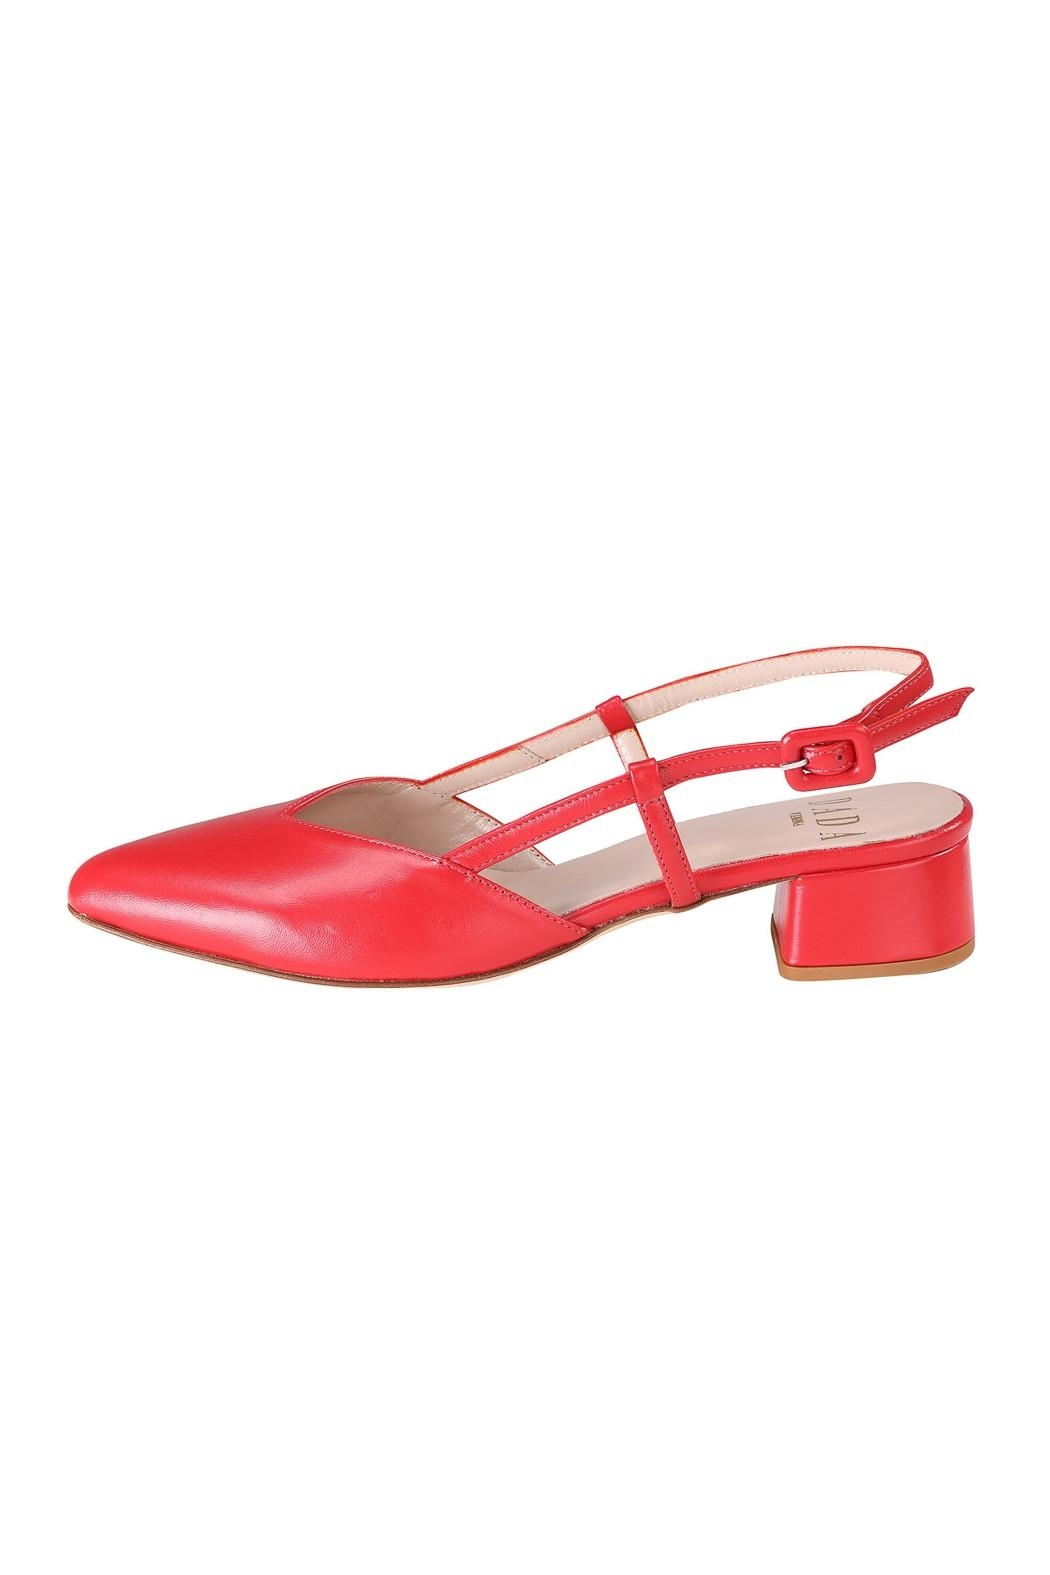 Pascucci Red Leather Slingback - Main Image